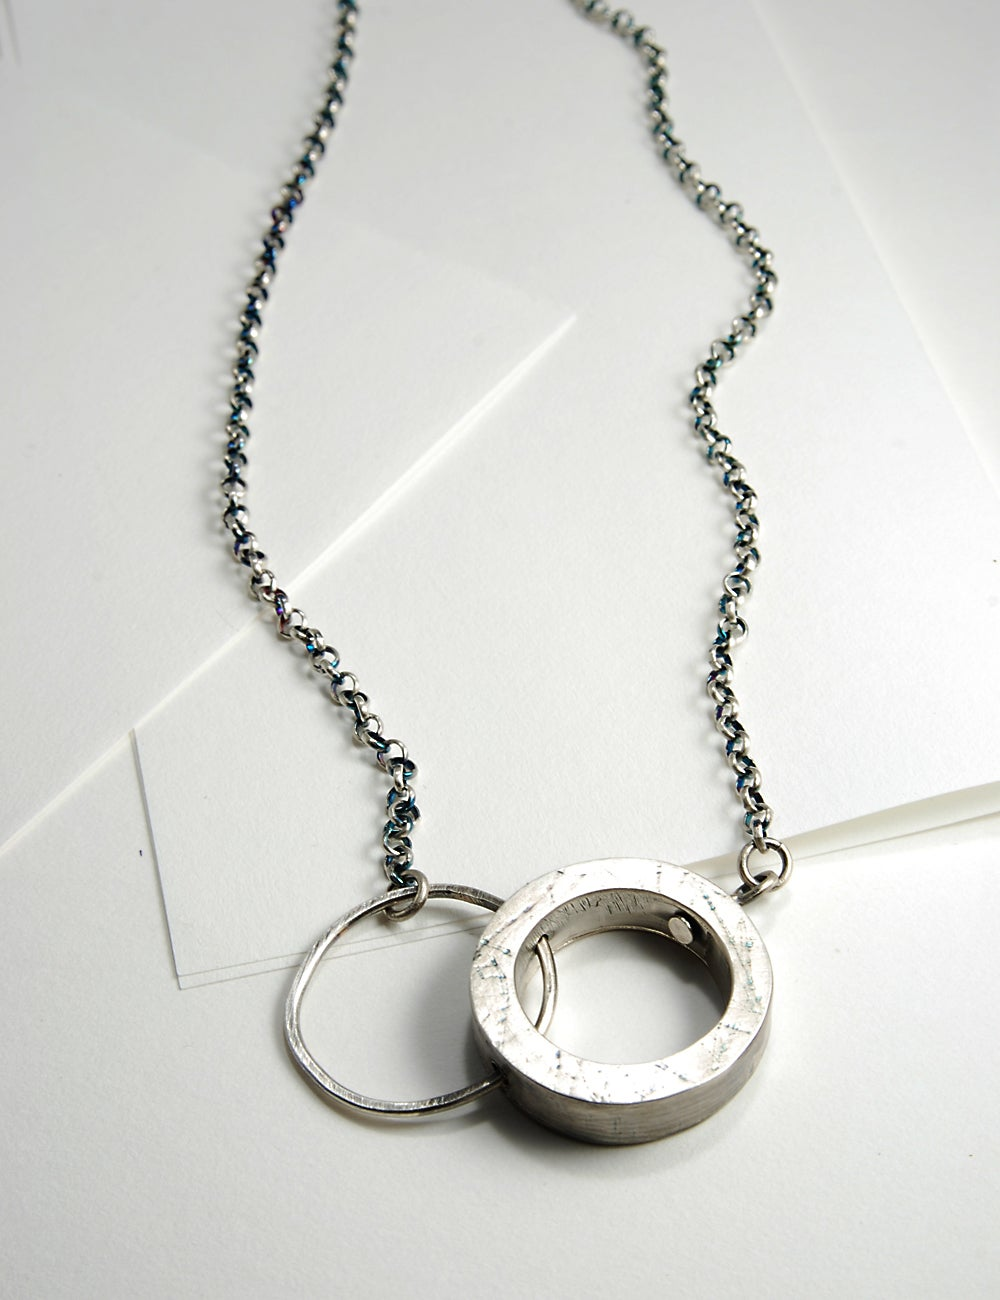 Image of Double Rings, Sterling Silver Hollow Form Necklace